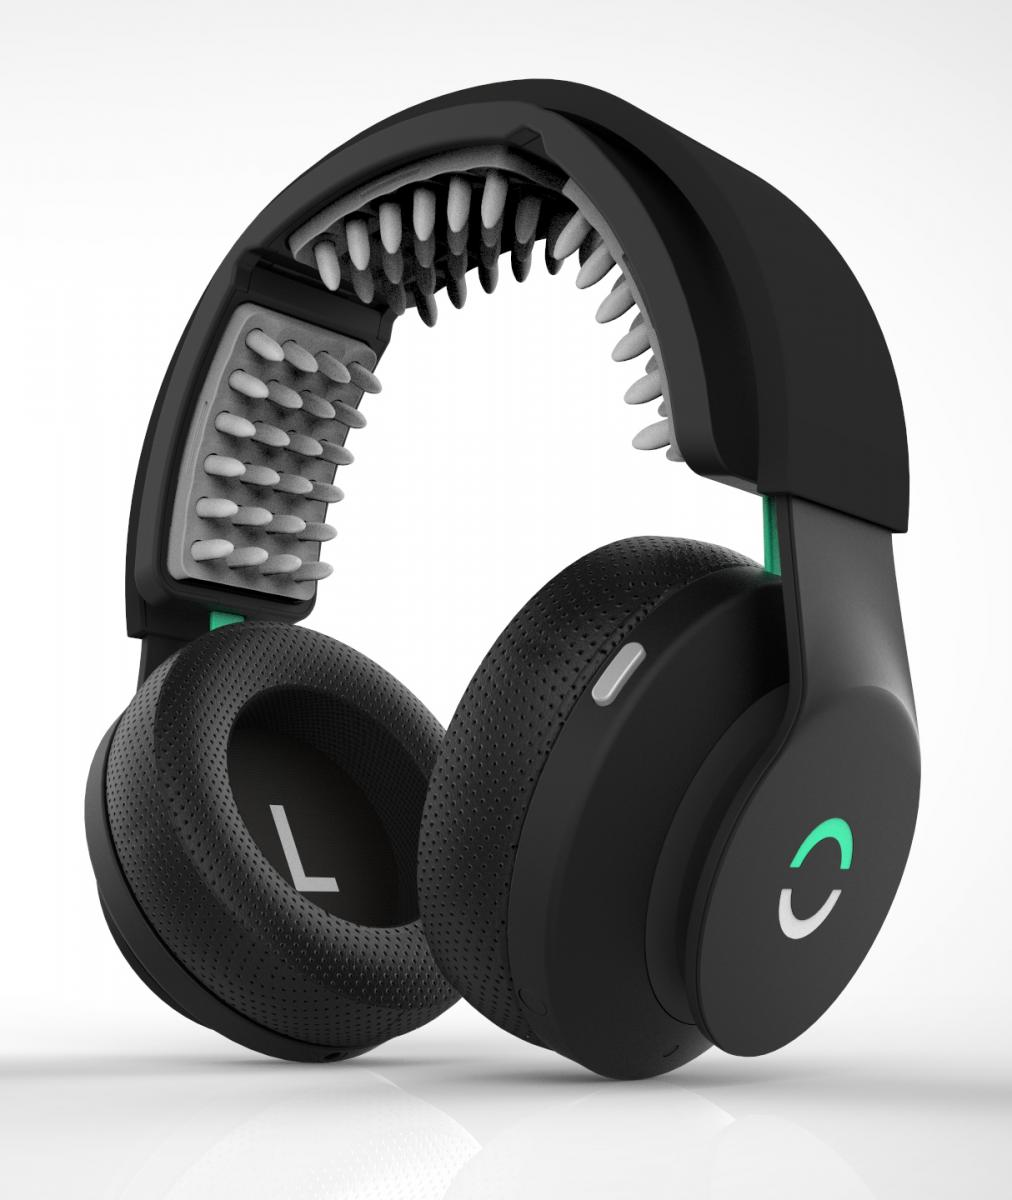 Head Set Halo Neuroscience Collects 13m For Its Brain Stimulating Headset